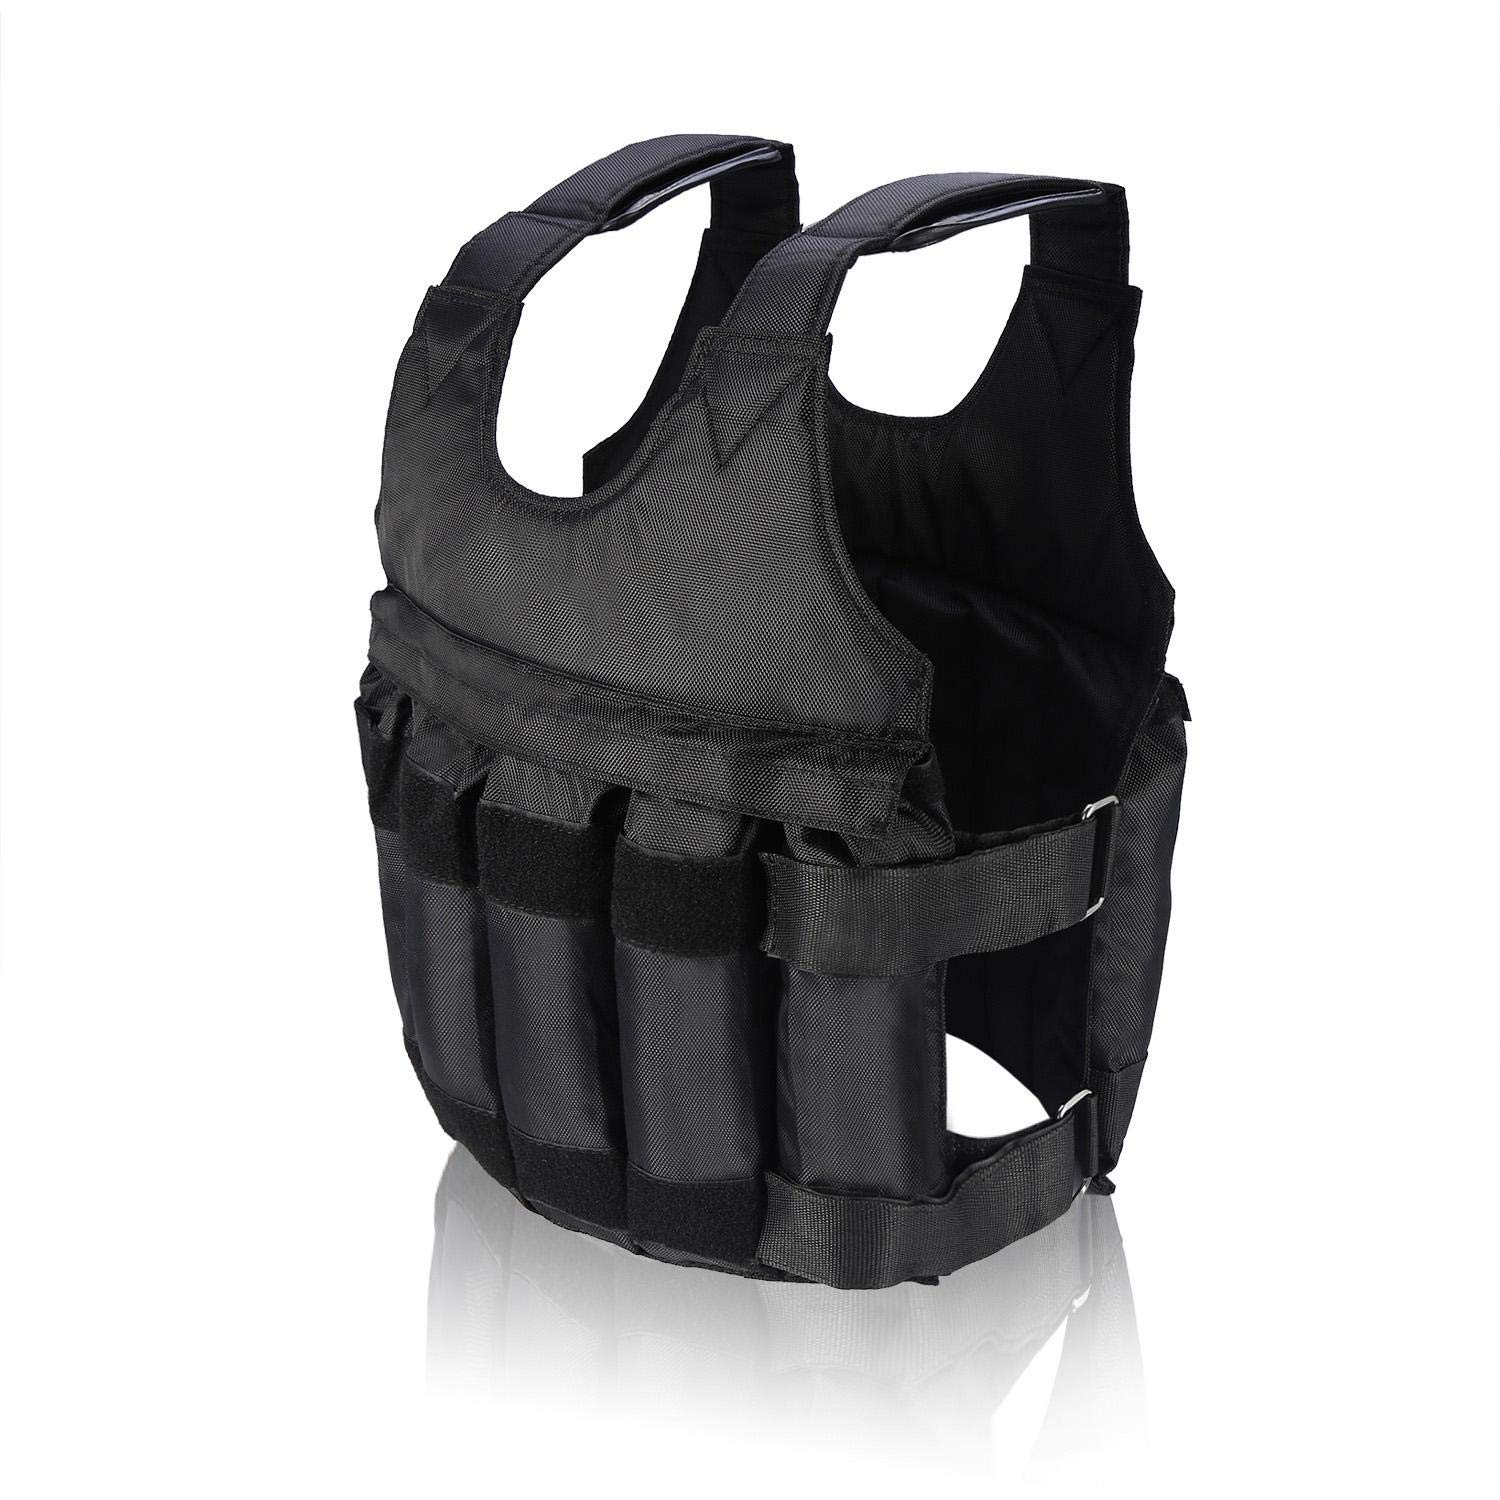 Weighted Vest 50KG Max Loading Durable Nylon Multiple Pouches Training Vest for Exercise Boxing Training Fitness